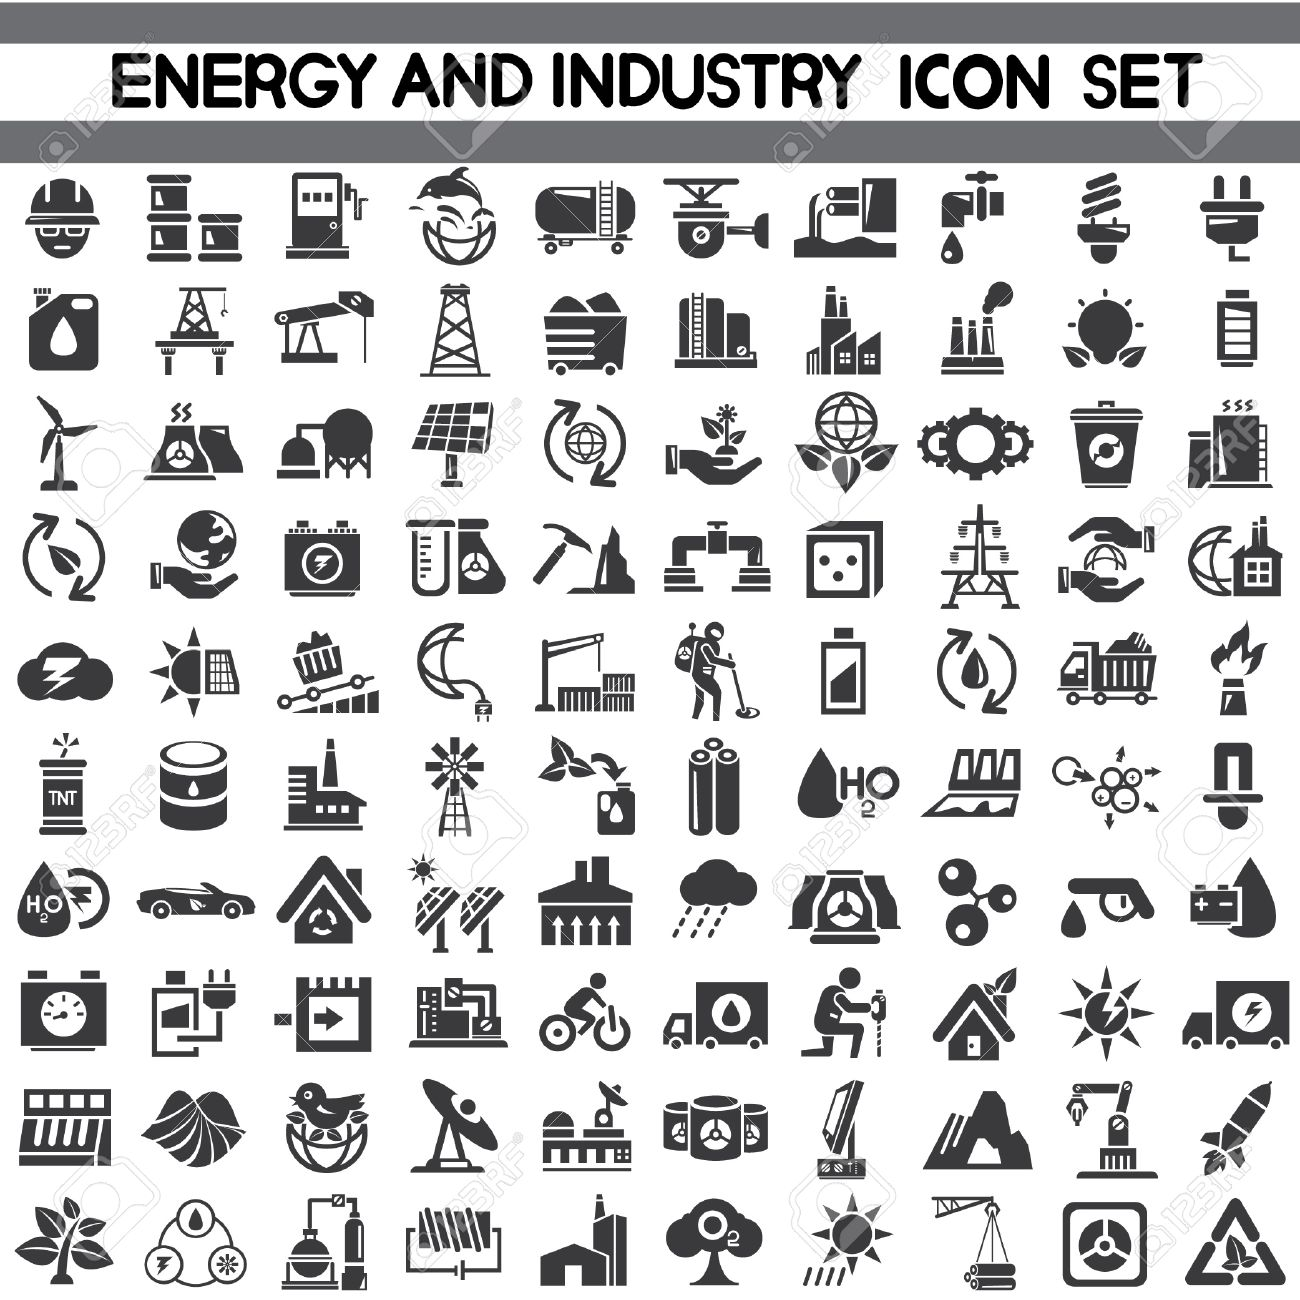 energy icons, industry icons, go green icons, save energy icons, vector Stock Vector - 24427324